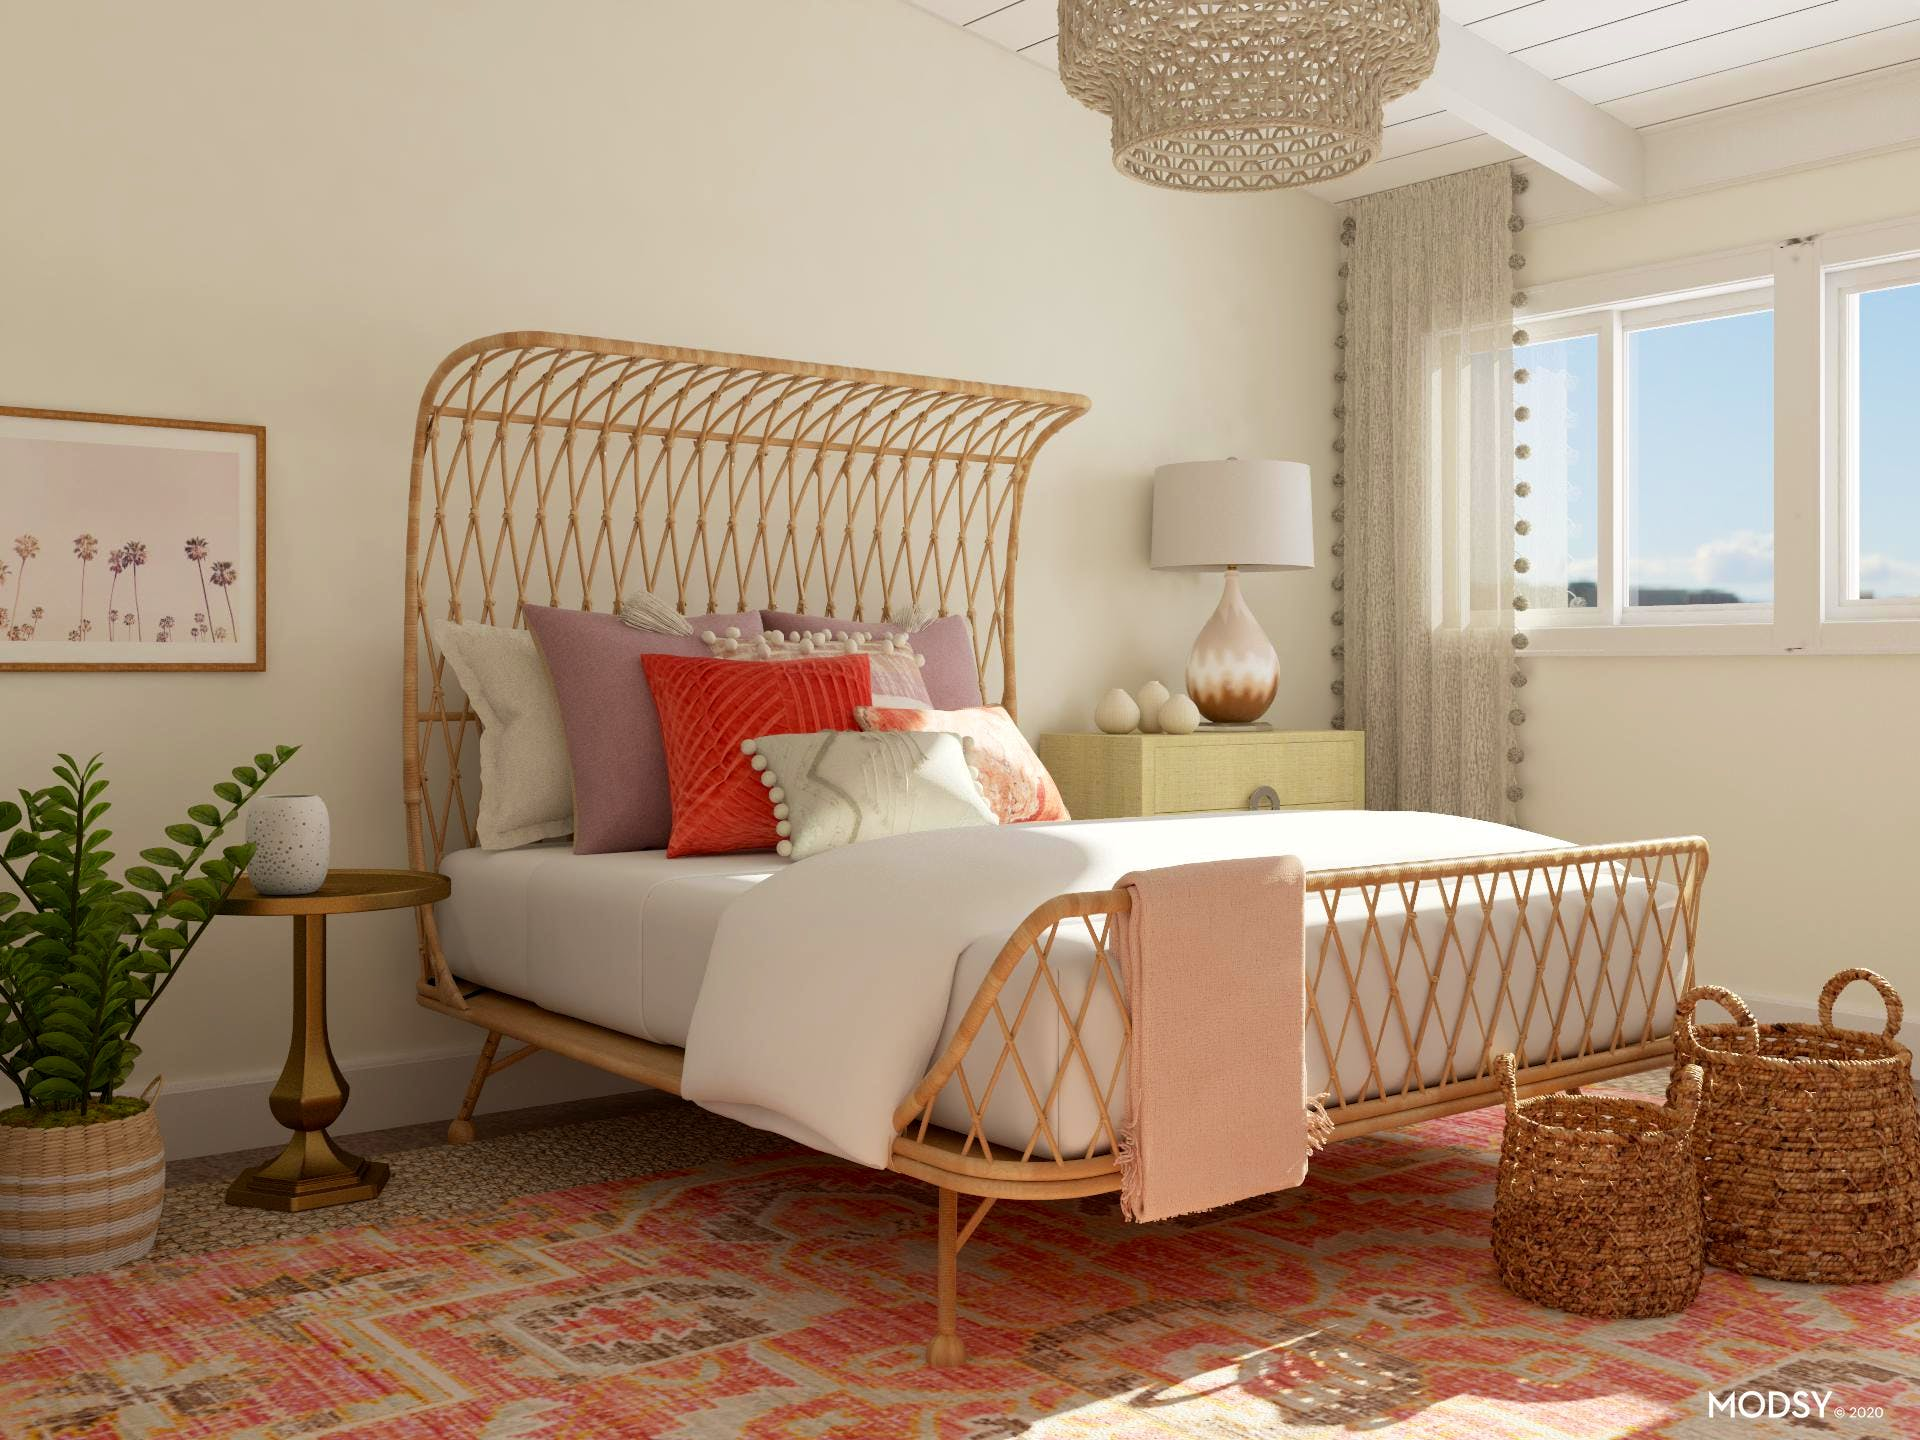 Delightful Boho Bedroom in Soft Pink Hues